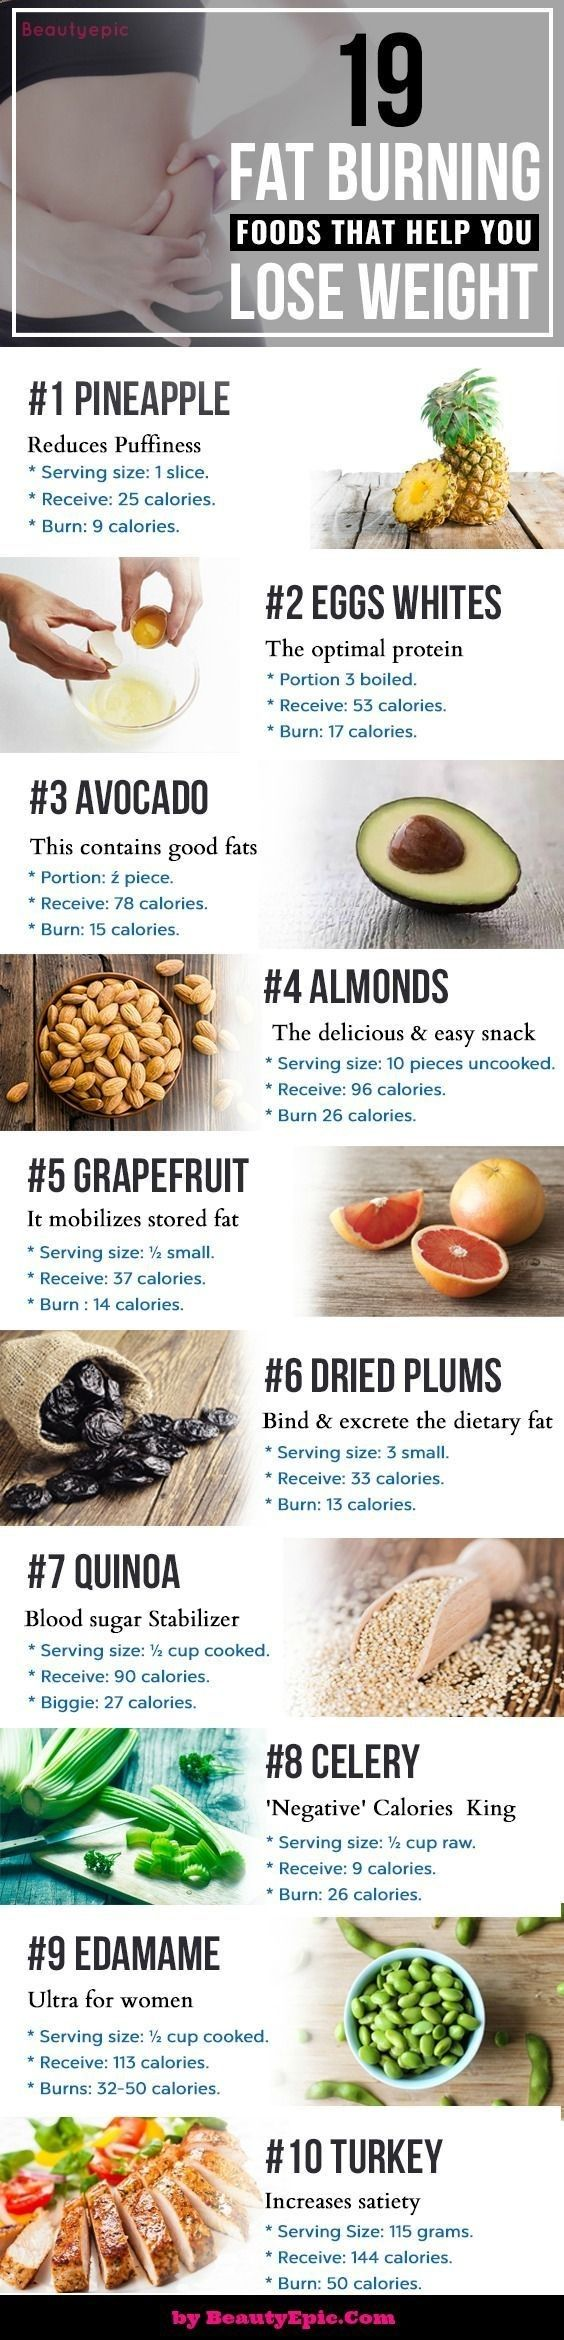 Lose weight 27 days